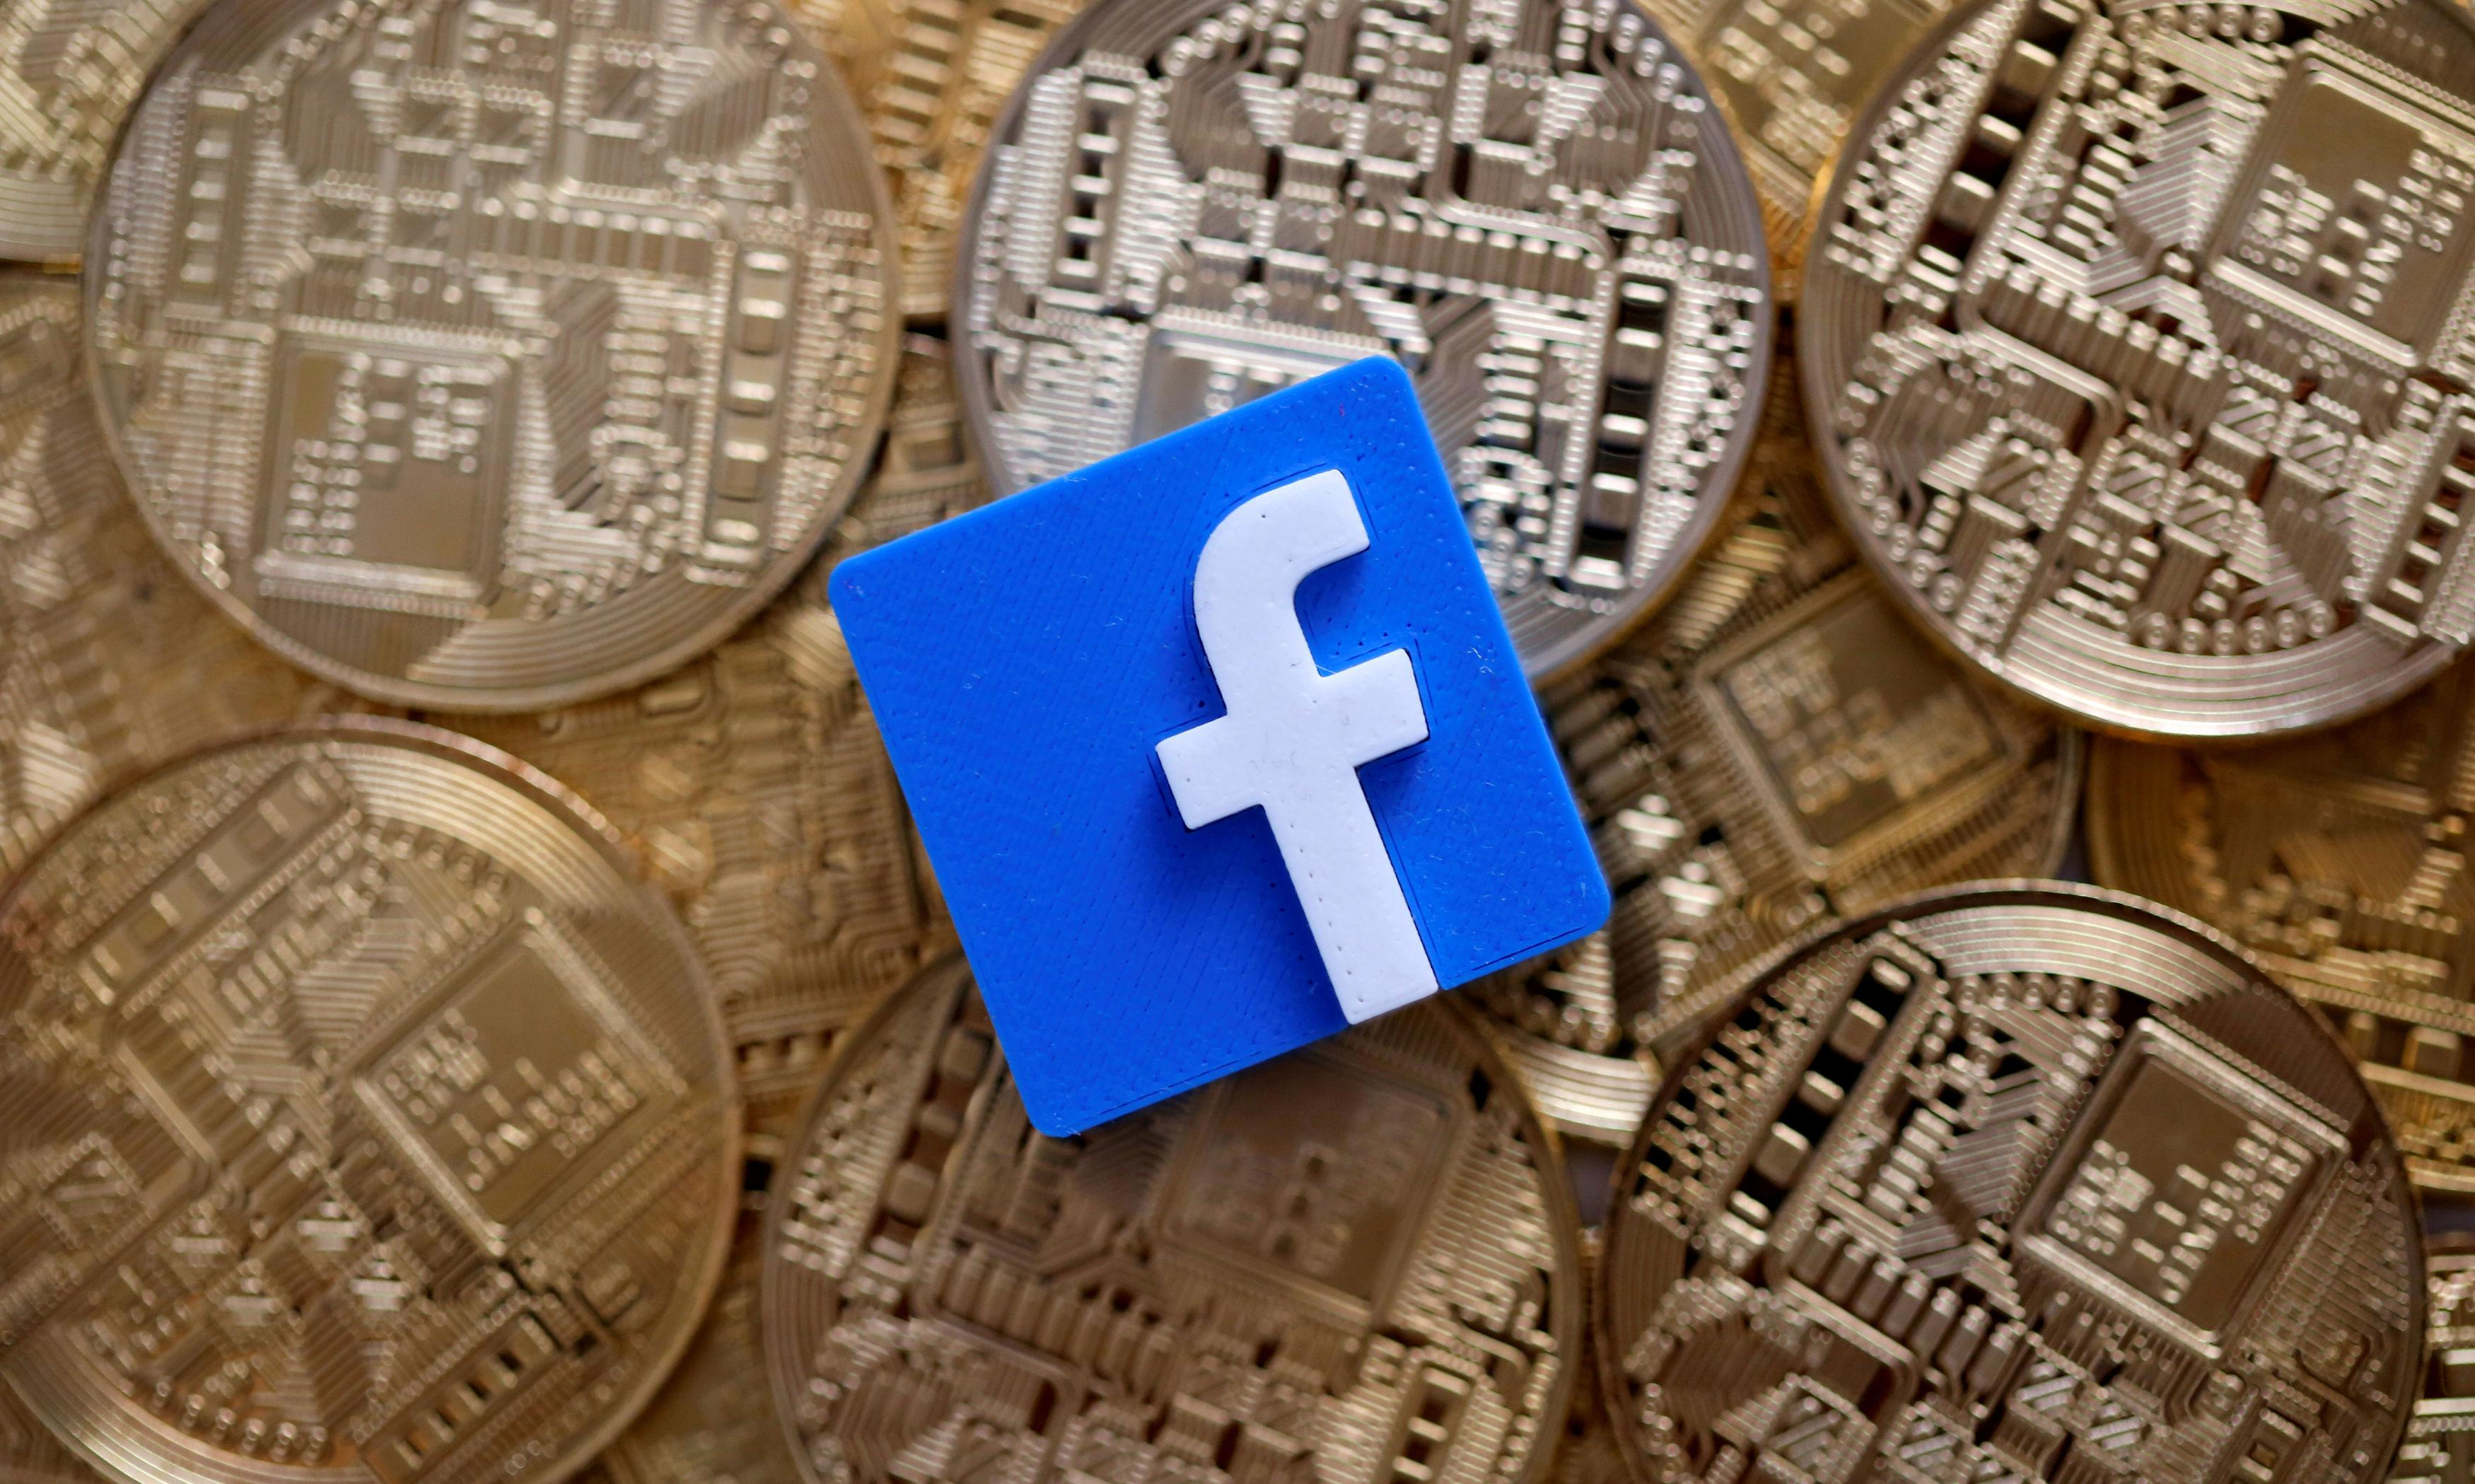 Money's no object for Facebook, so hit it where it hurts